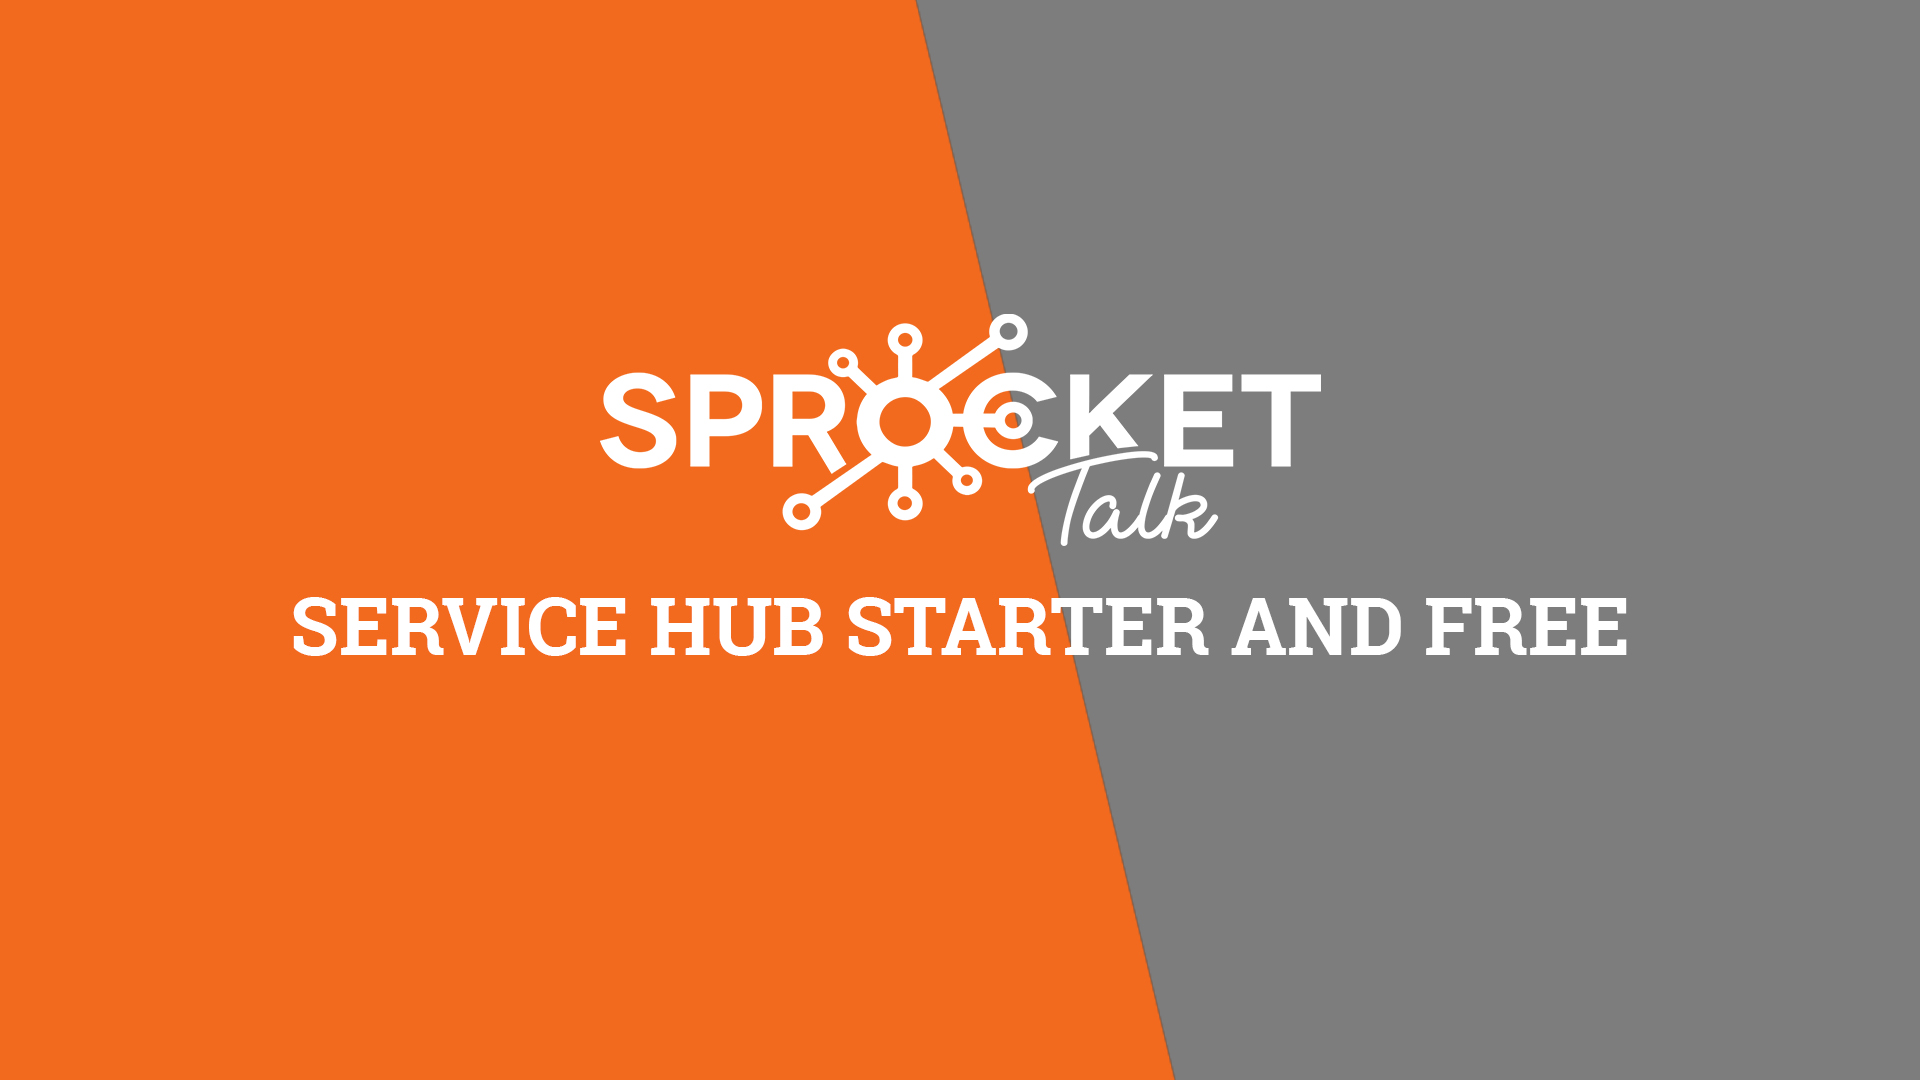 Service Hub Starter and Free